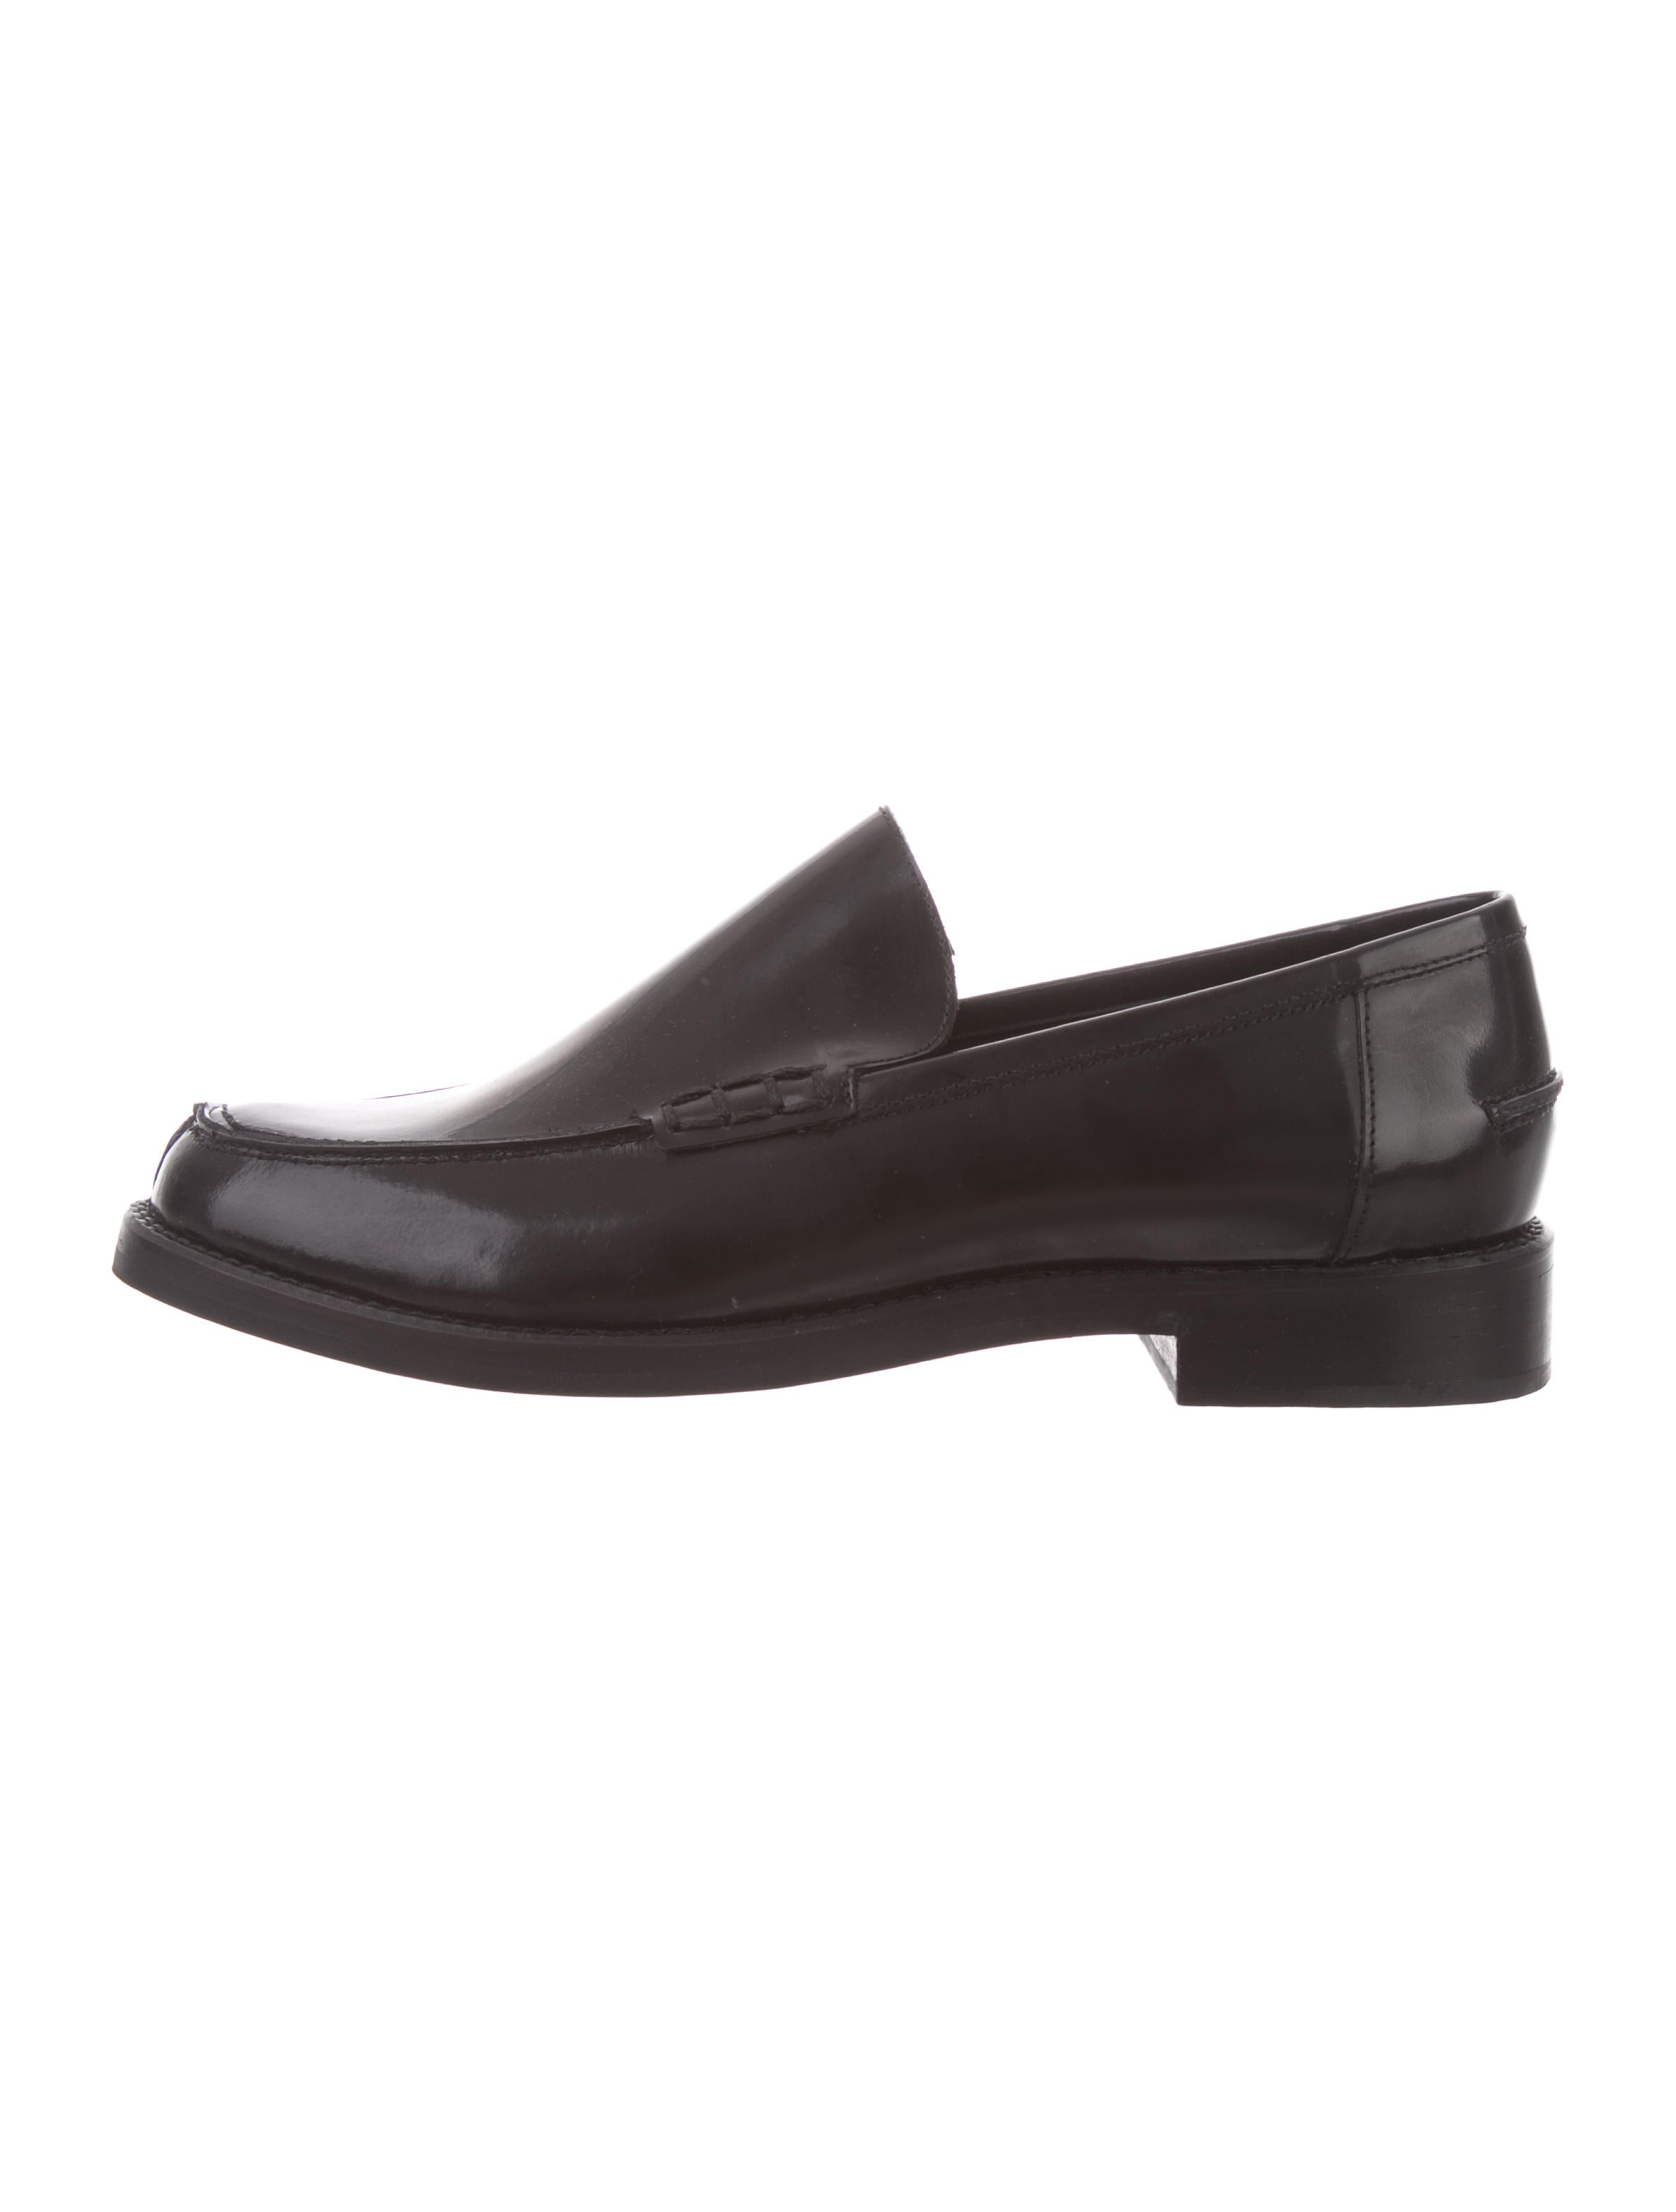 Rachel Comey Cava Leather Loafers w/ Tags discount extremely new arrival 4gUYCNLV37